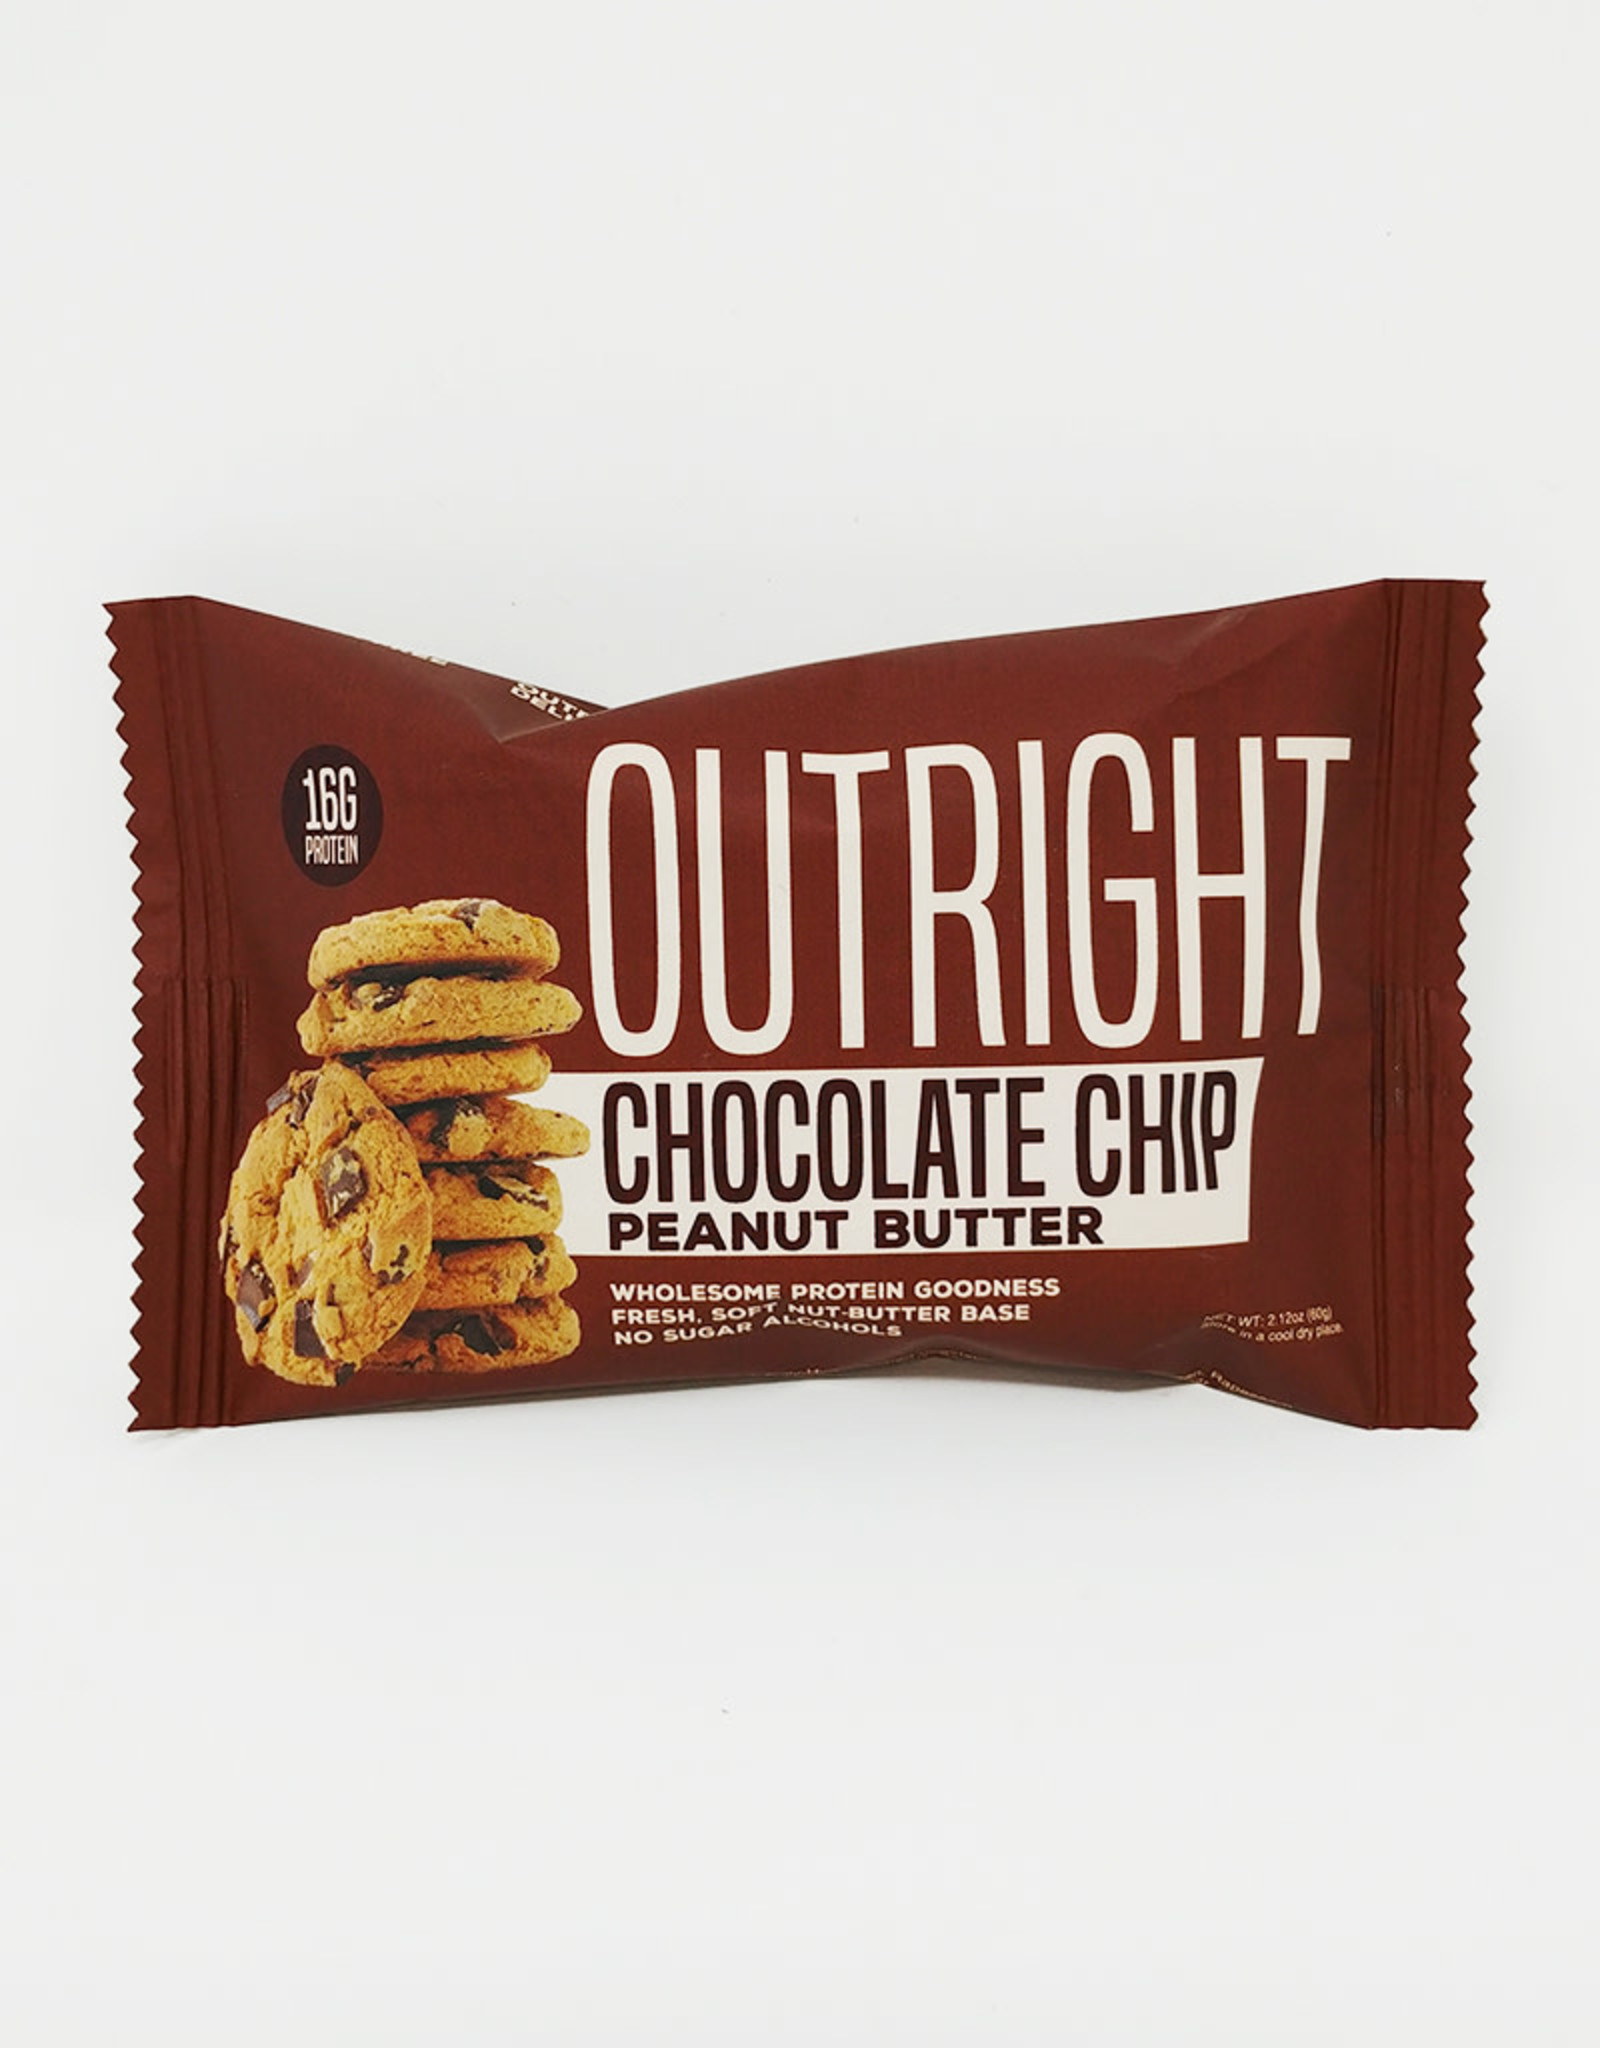 Outright Bar Outright Bar - Chocolate Chip Peanut Butter